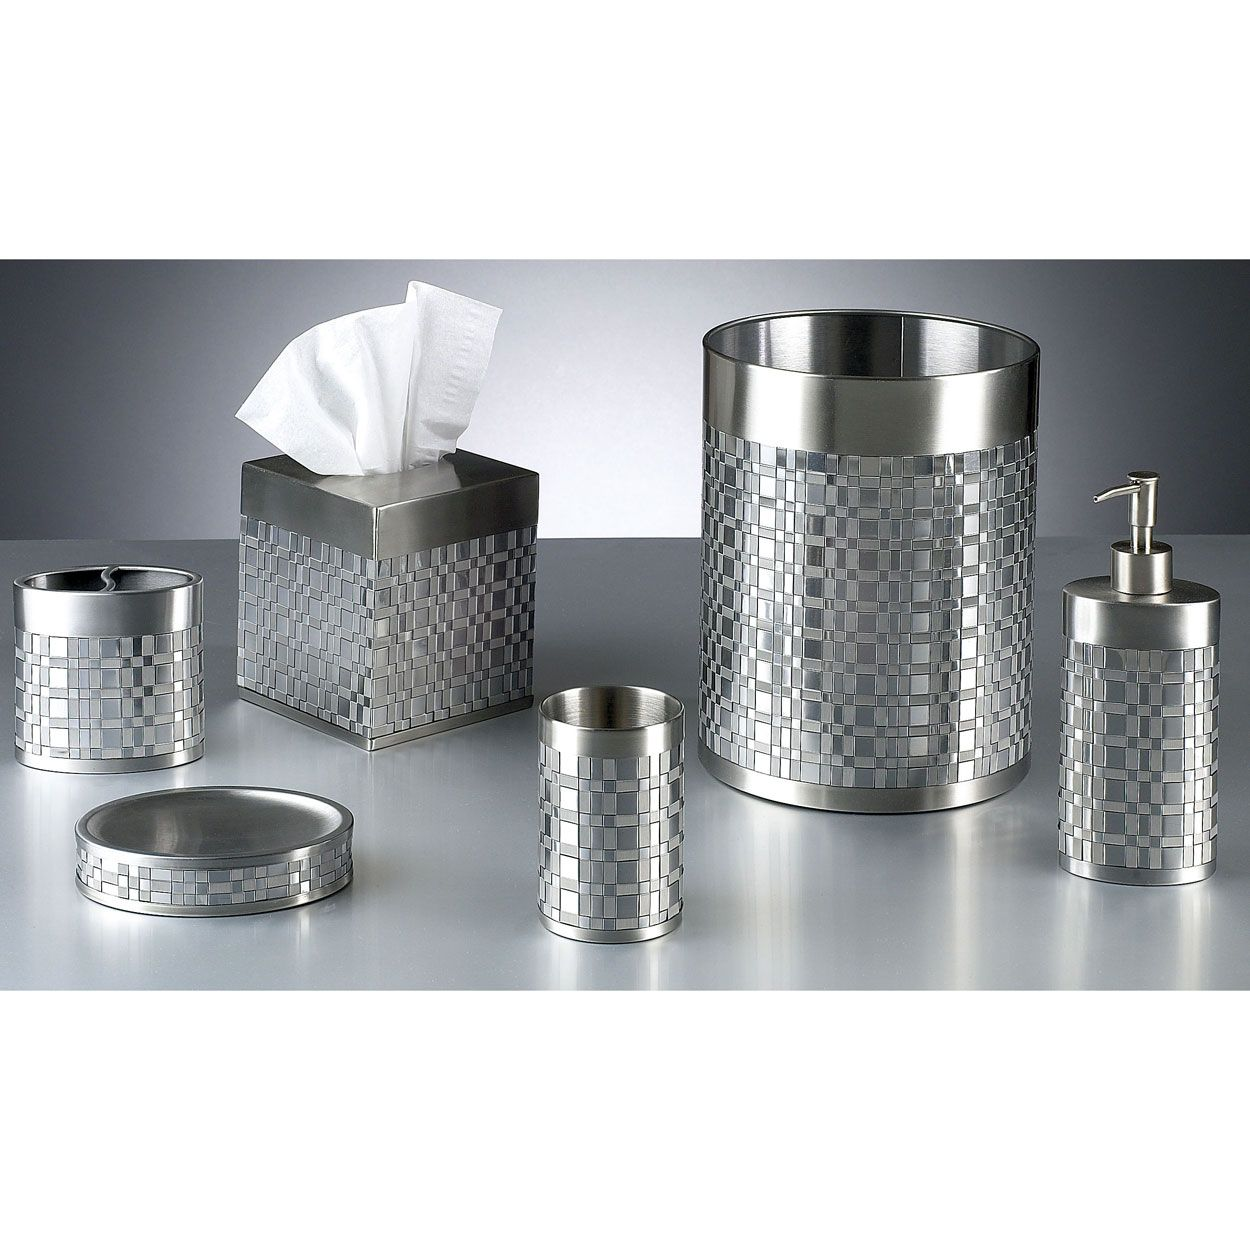 Stainless Steel Bath Accessories With